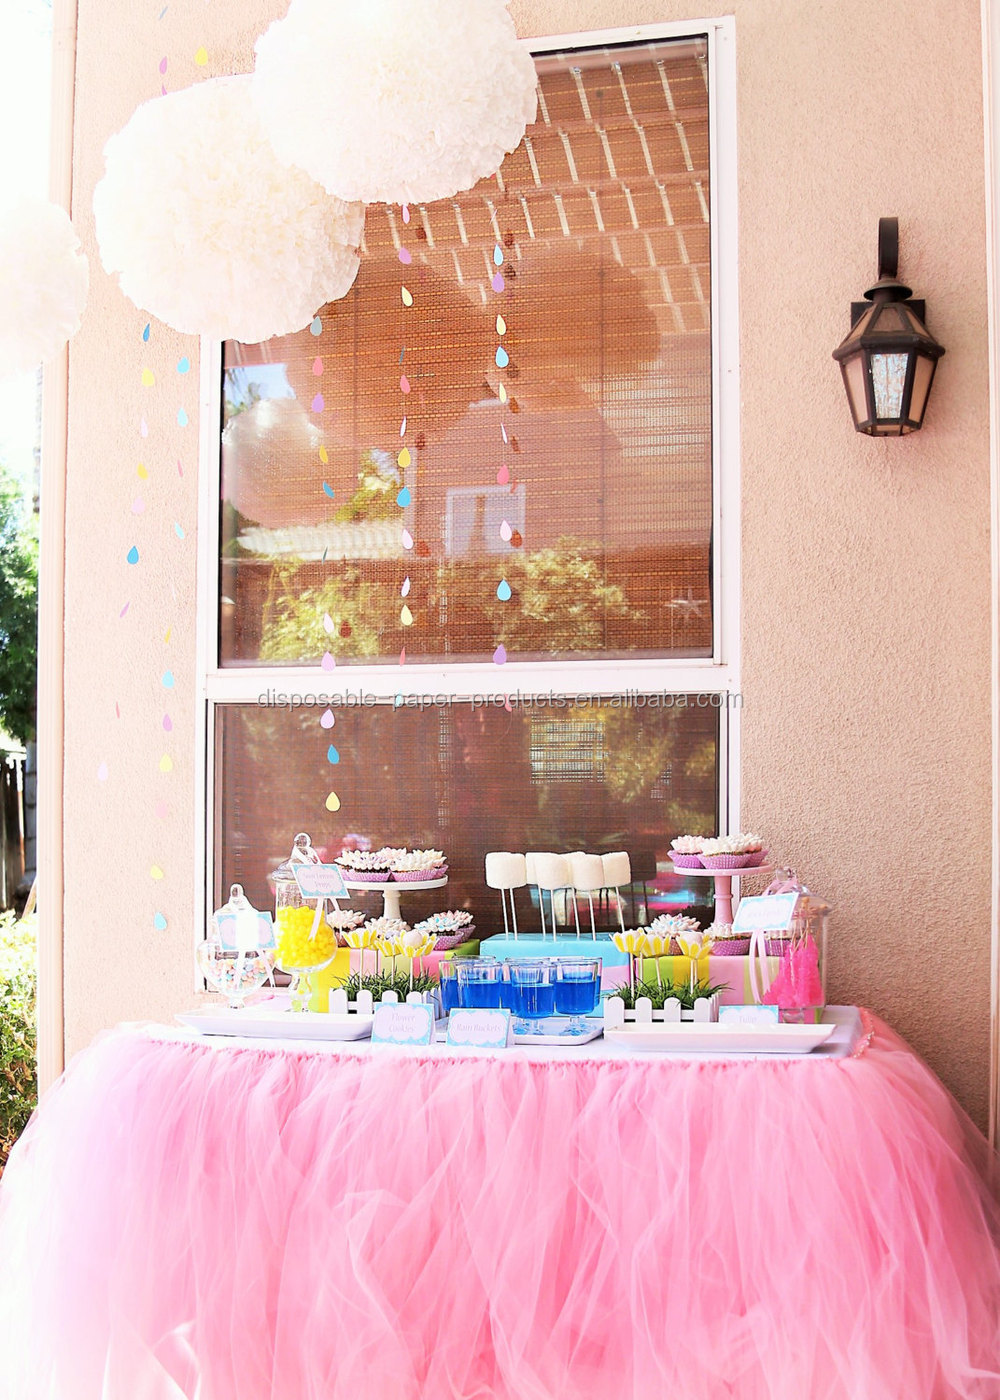 New pink tutu table skirt planning ideas supplies tulle for Baby shower tulle decoration ideas